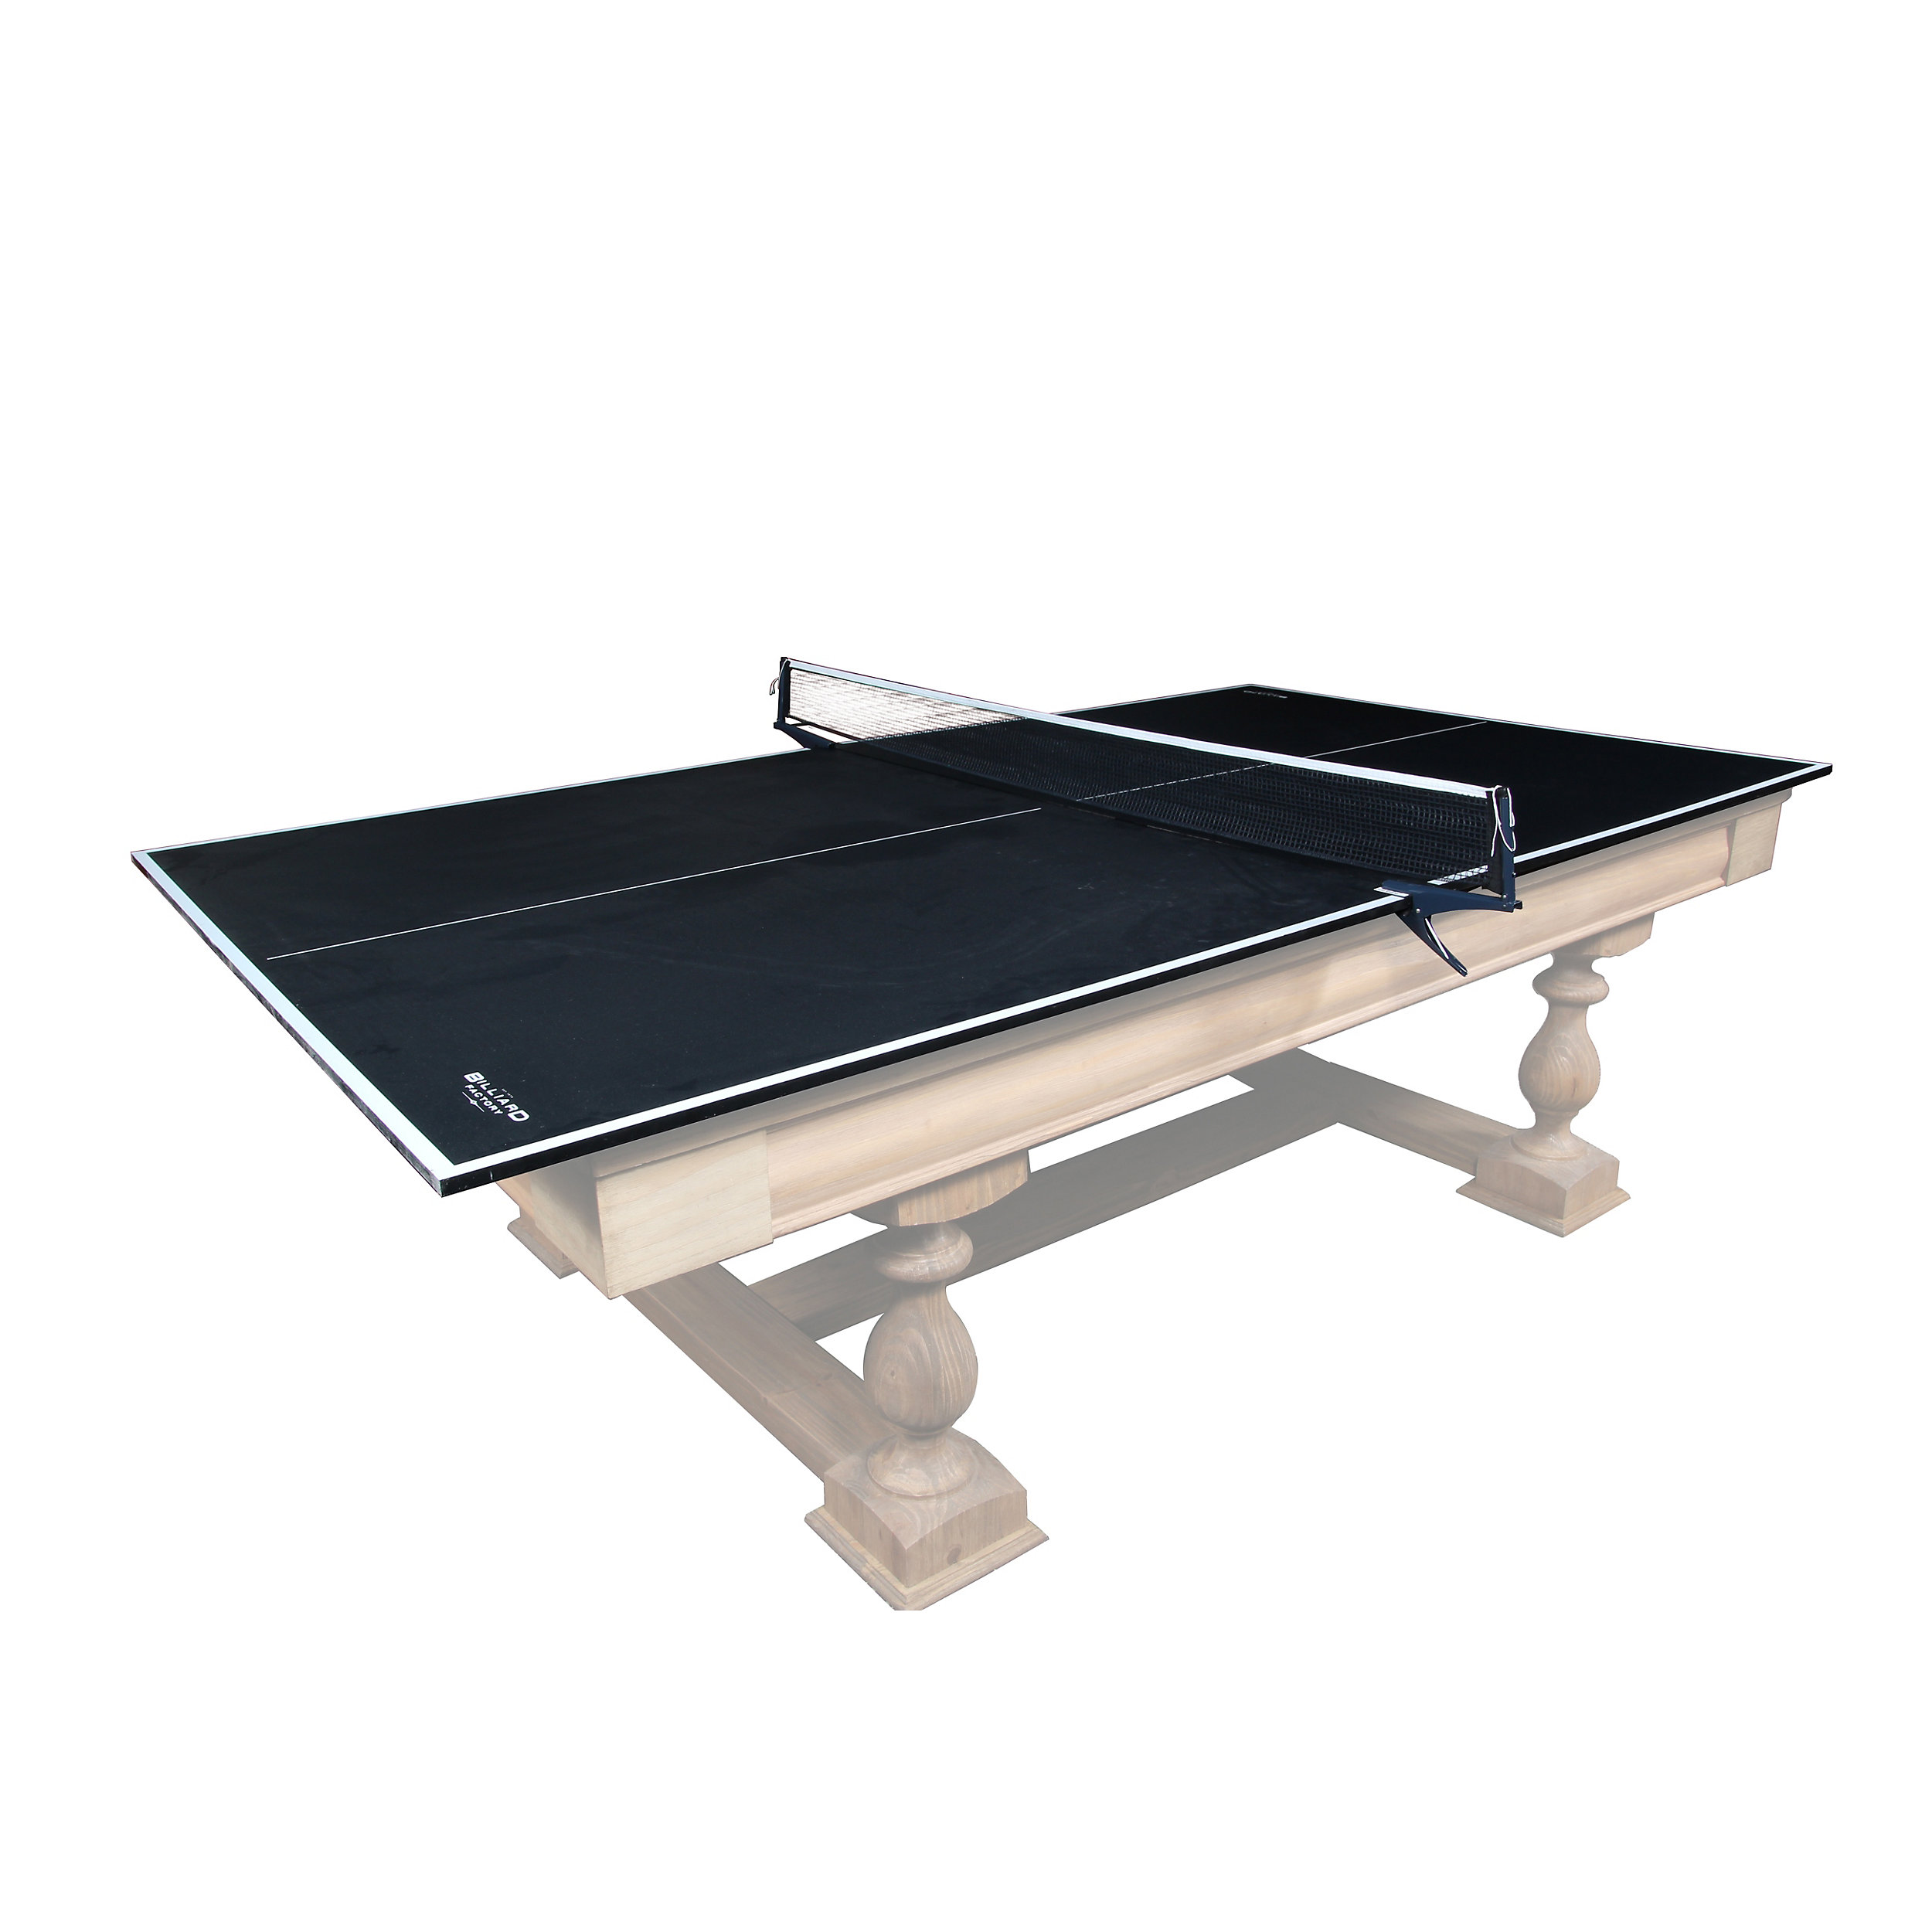 Table Tennis Conversion Top Ping Pong Conversion Top - Black top pool table